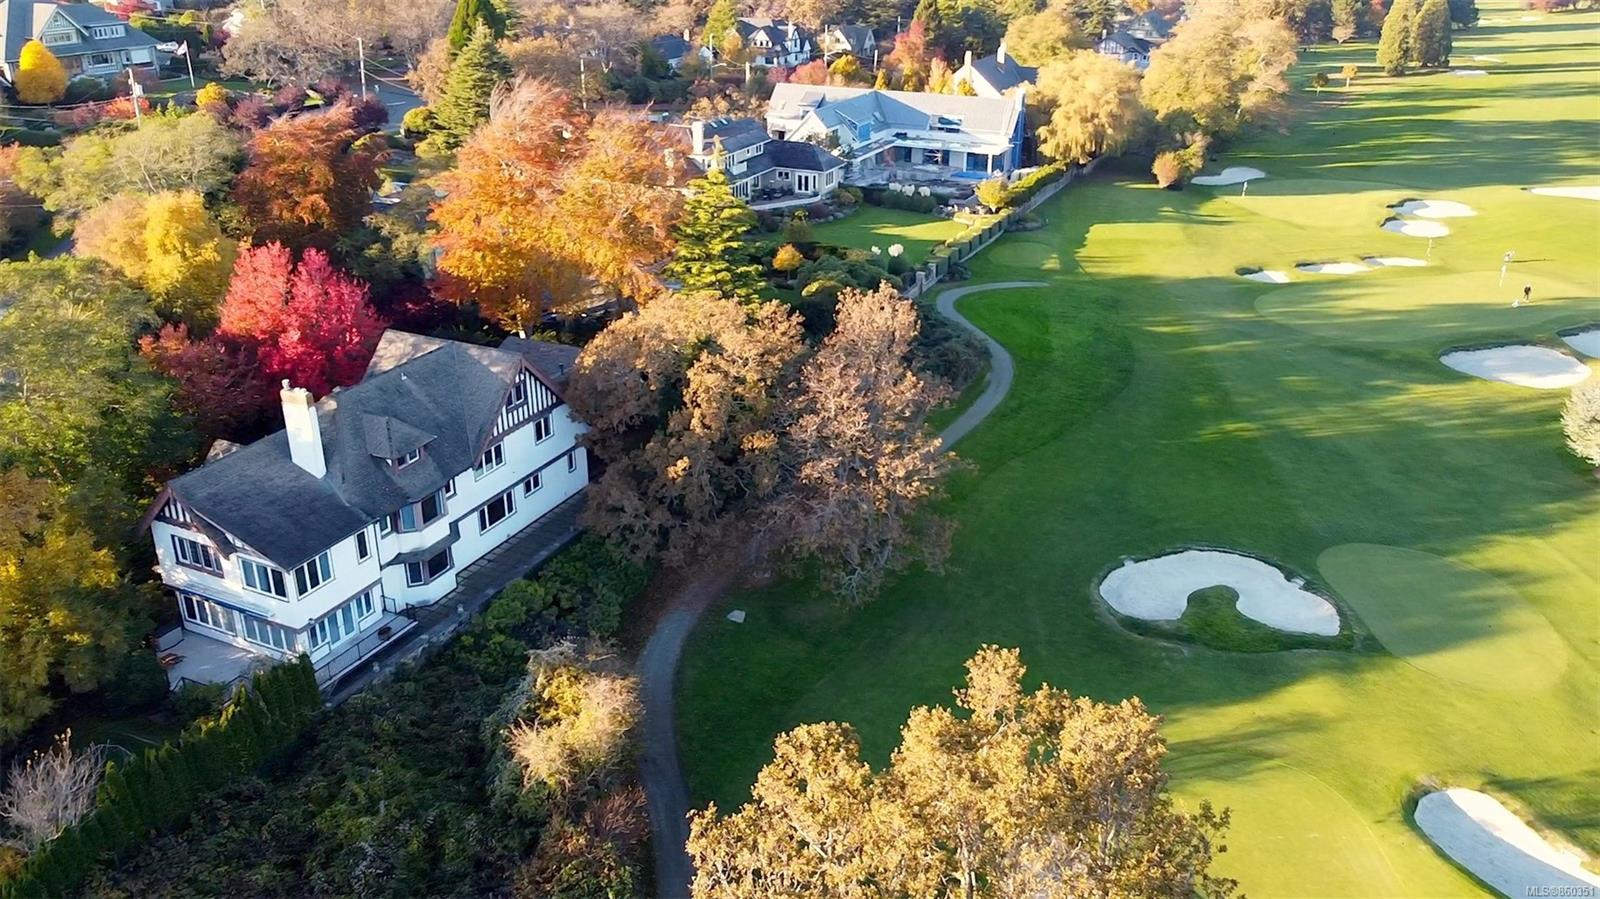 A private sanctuary of Character, Timeless Elegance & the most stunning full sun locations; one of a handful of exclusive homes that border the Victoria Golf Course (founded 1893) w/water views from Mt. Baker to the Olympic Mtns. Private & completely hidden from view, find this Samuel MacLure 1911-7,164 SqFt, 4/5 BR, 5 BA, 5 FP home on 3 levels of quality family living. Many upgrades of which the ELEVATOR, foundation, drainage, wiring, thermo windows, gas fireplaces & heat pump are among the highlights/all done during a major 2004 meticulous renovation balanced w/glossy hardwood flrs, leaded windows (full storms) coffered Ceilings & grand proportions rarely seen in contemporary homes. Combine this w/an Architecturally sensitive addition of Family Rm & 2 Car Garage with automated entry & the result is a, stunning home on a beautiful lot overlooking the quintessential S Oak Bay View. All necessities are within 10 minutes & the Seaside Village of Oak Bay is within easy walking distance.